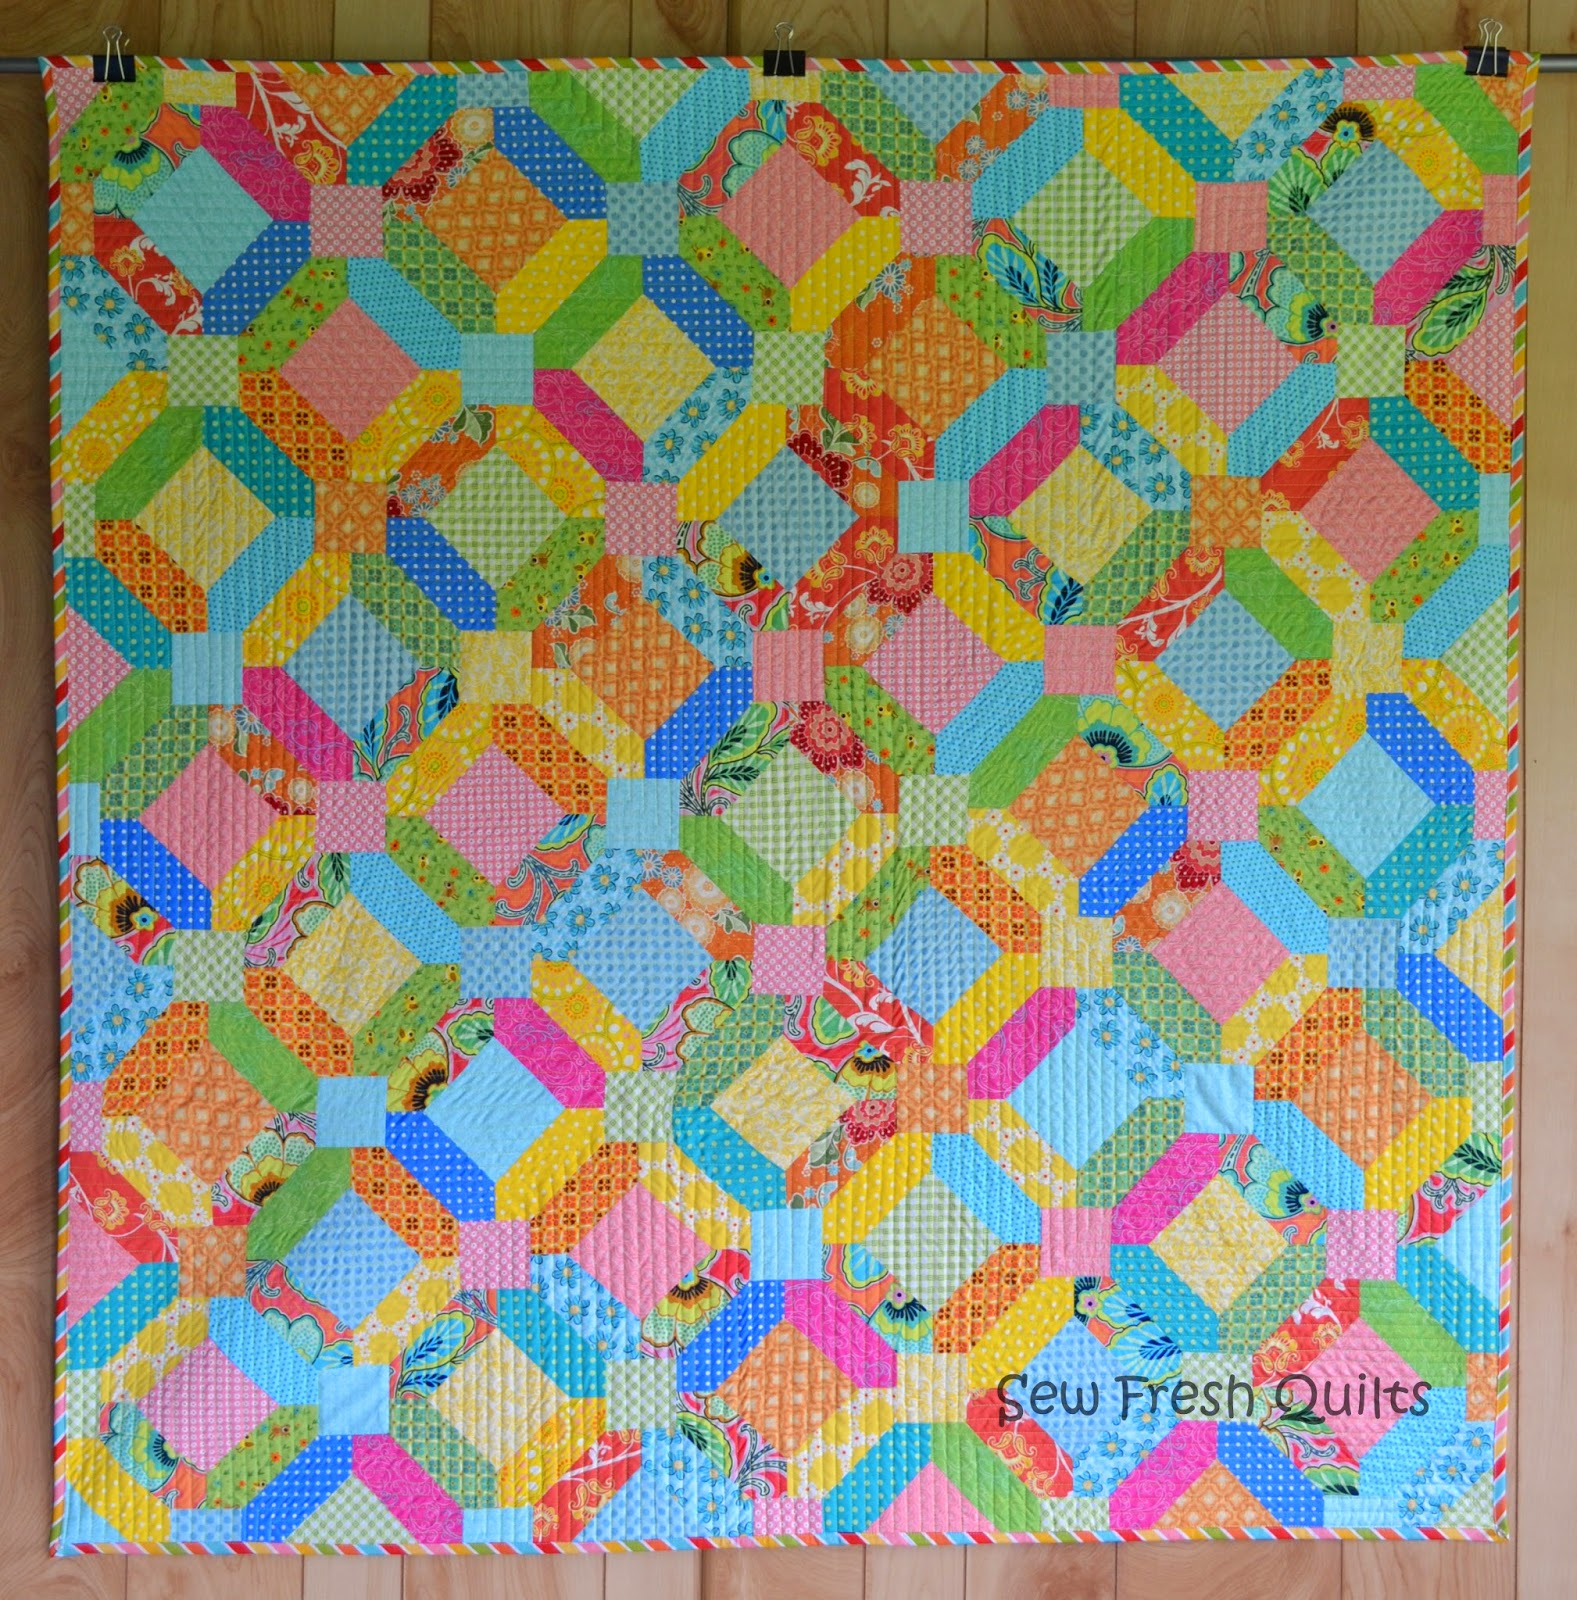 http://sewfreshquilts.blogspot.ca/2014/05/oh-suz-anna.html